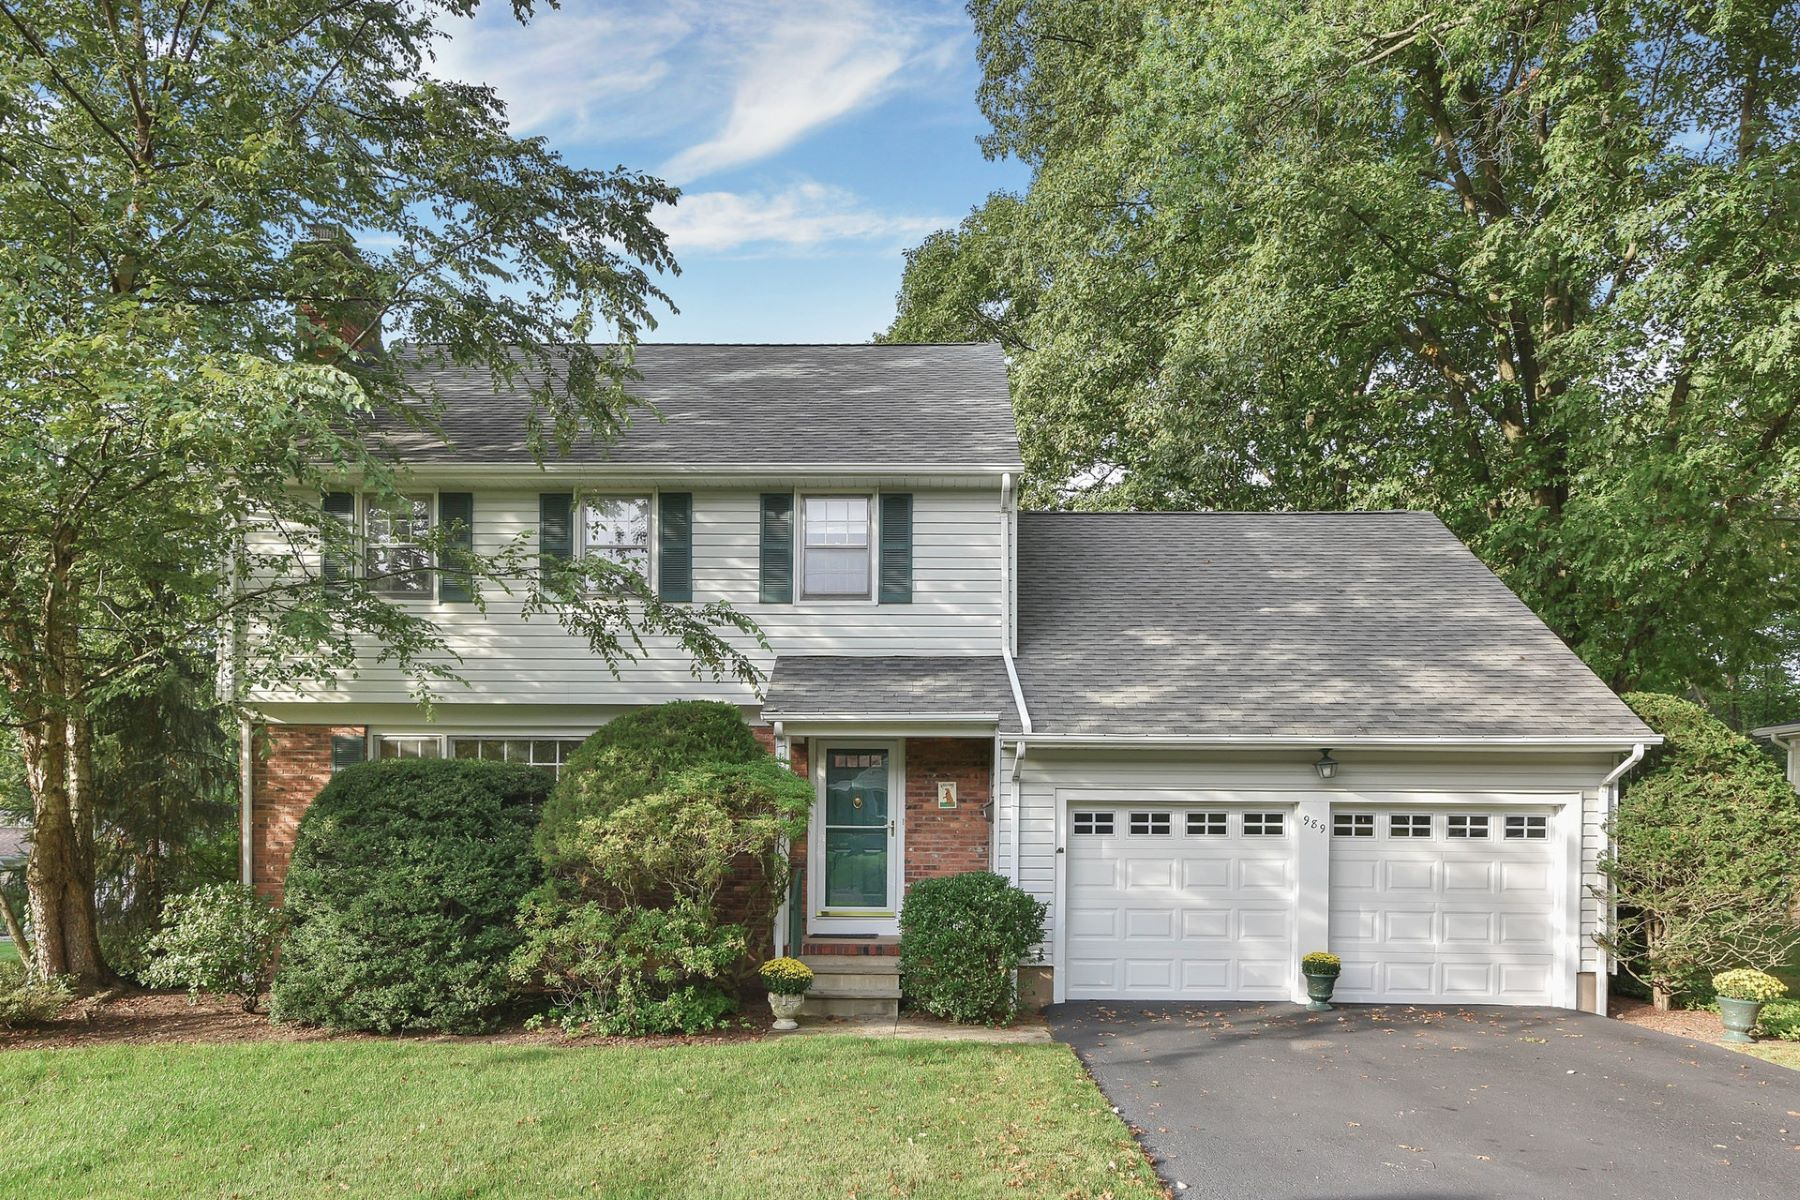 Single Family Home for Sale at A Meticulous Four Bedroom Reynen Built Colonial. 989 Hillcrest Road, Ridgewood, New Jersey 07450 United States